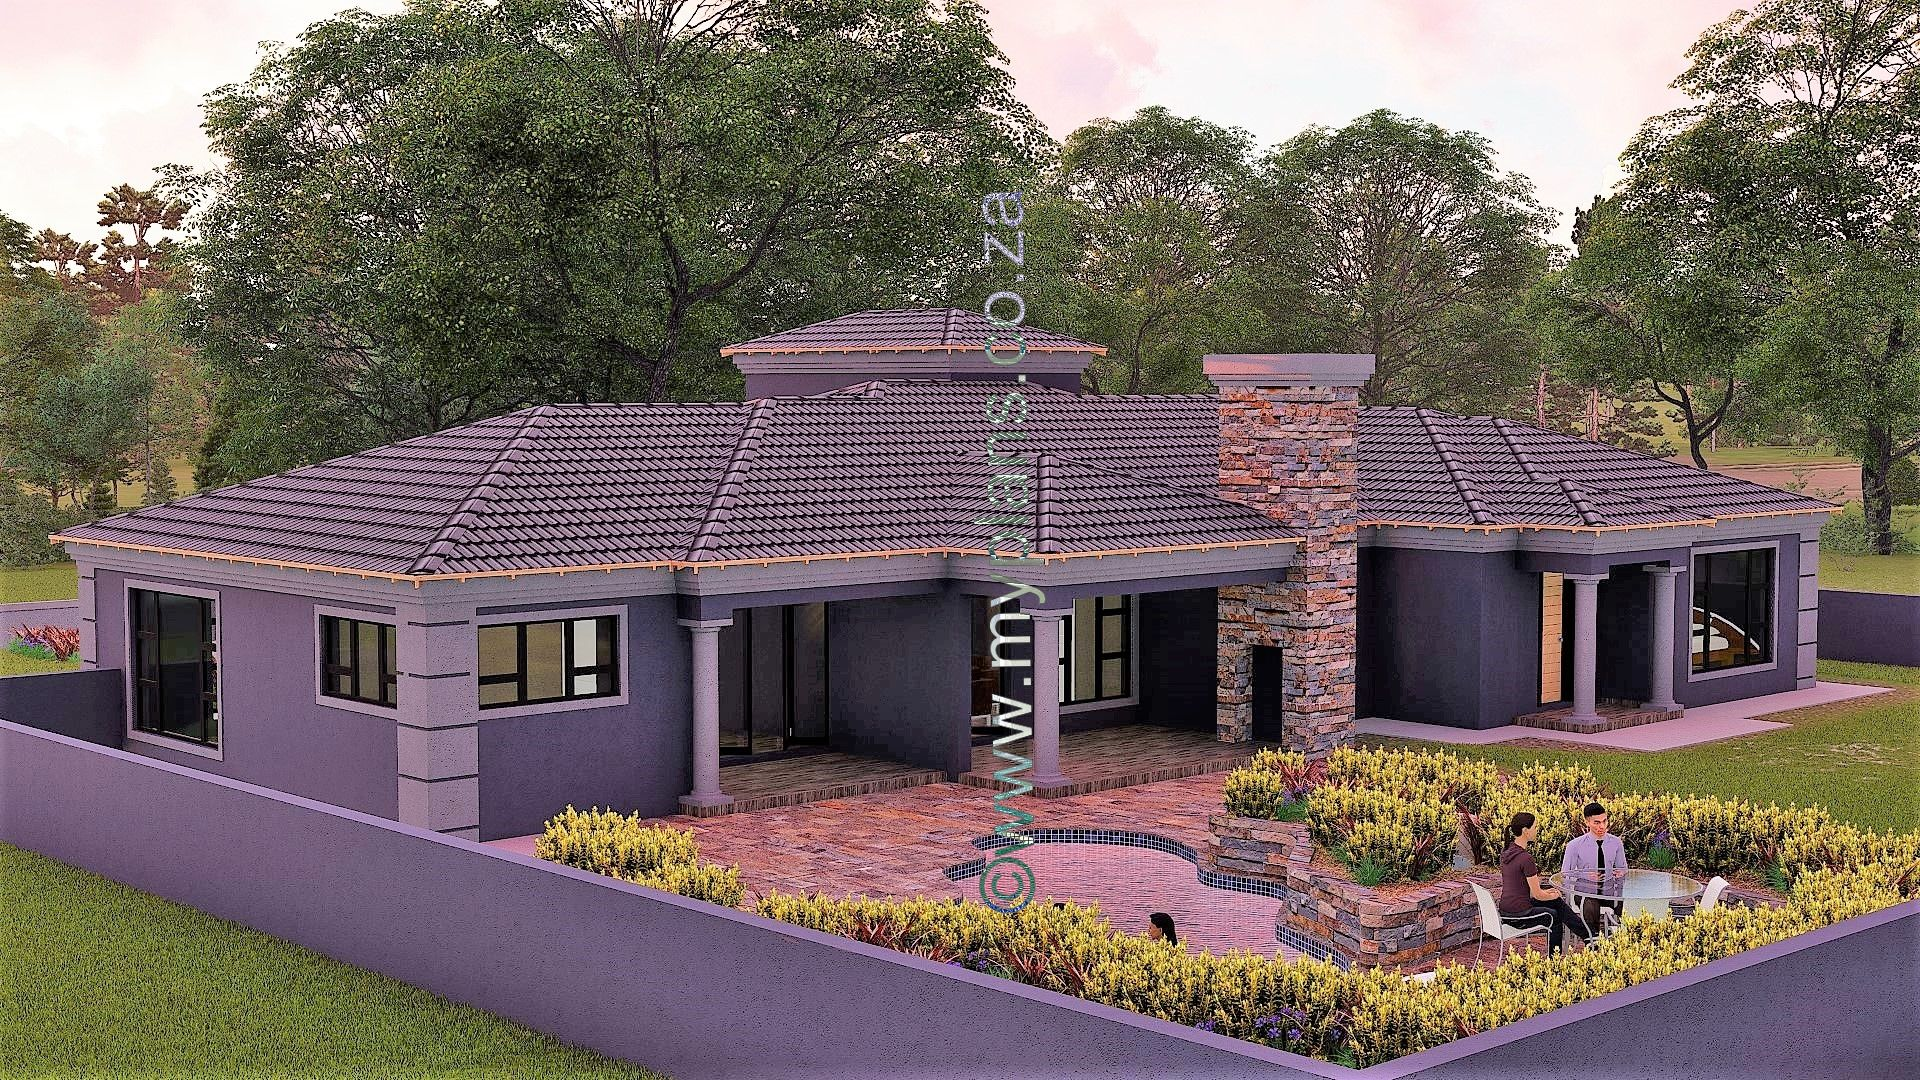 House Plans Zimbabwe Building Plans Architectural Services In 2020 My House Plans Single Storey House Plans Budget House Plans